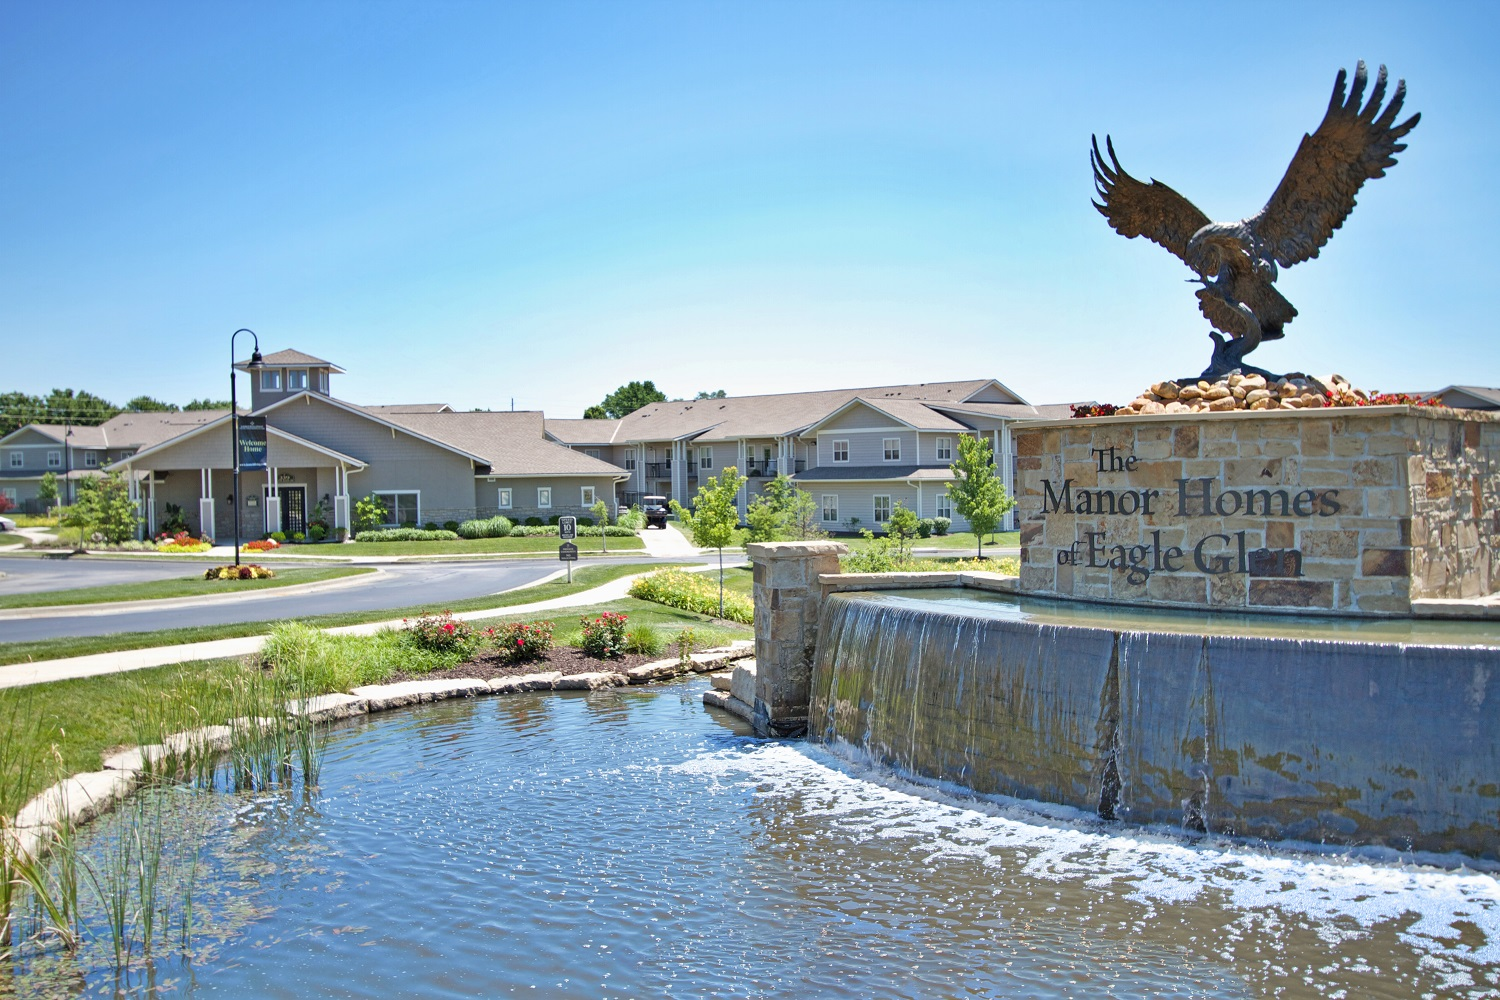 Manor Homes of Eagle Glen- Exterior Eagle Fountain.jpg